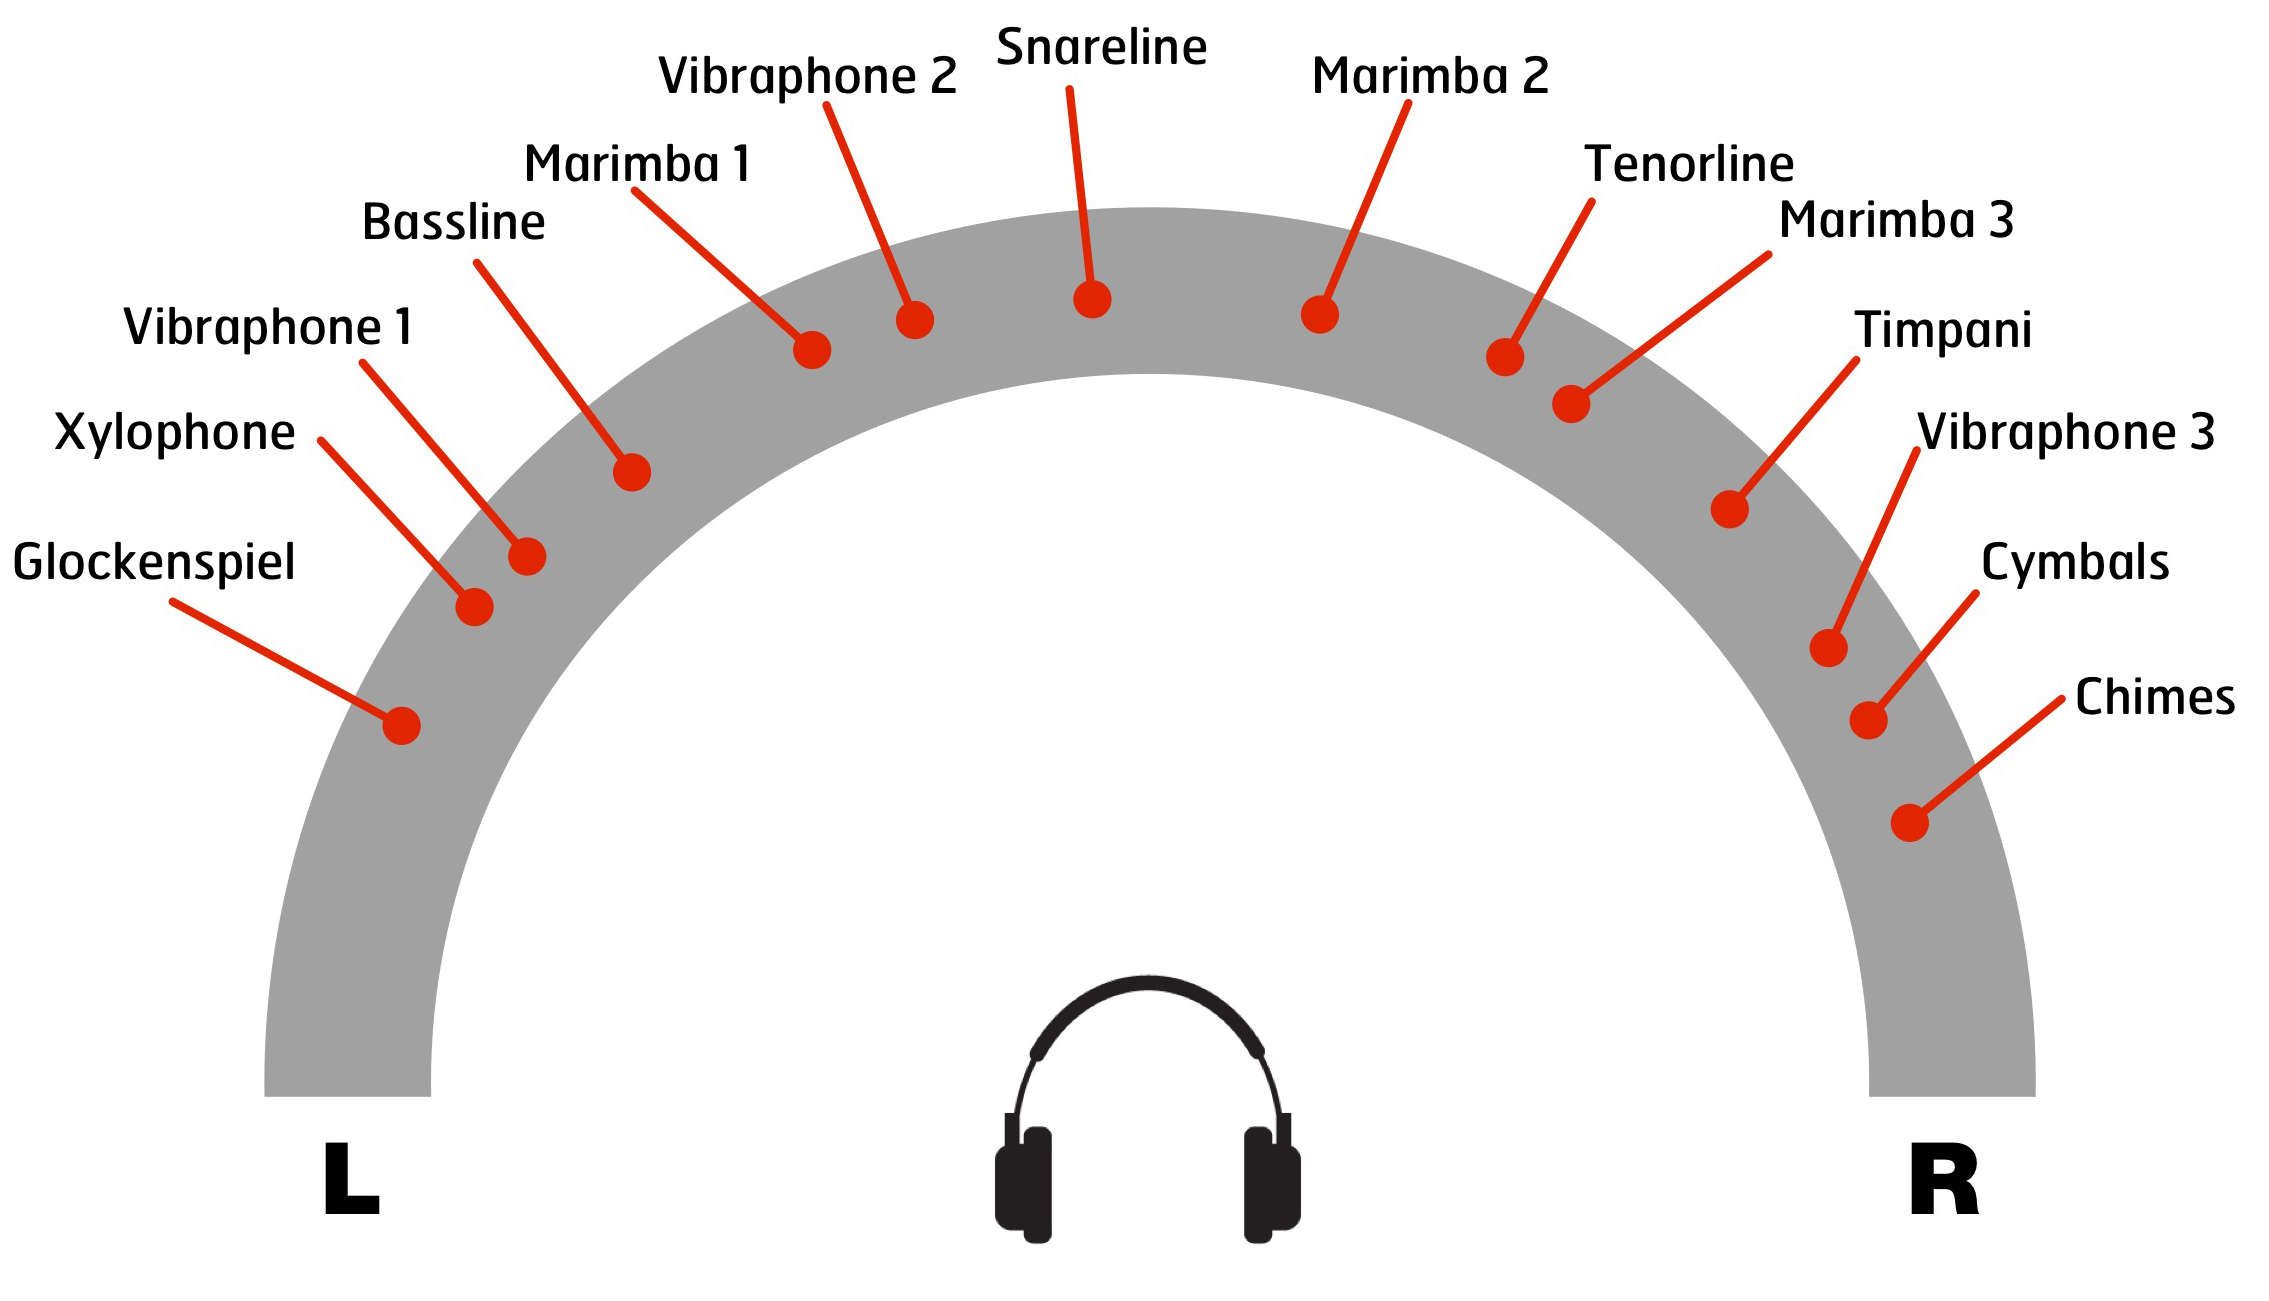 An example of how VDL instruments might be panned in a marching project.